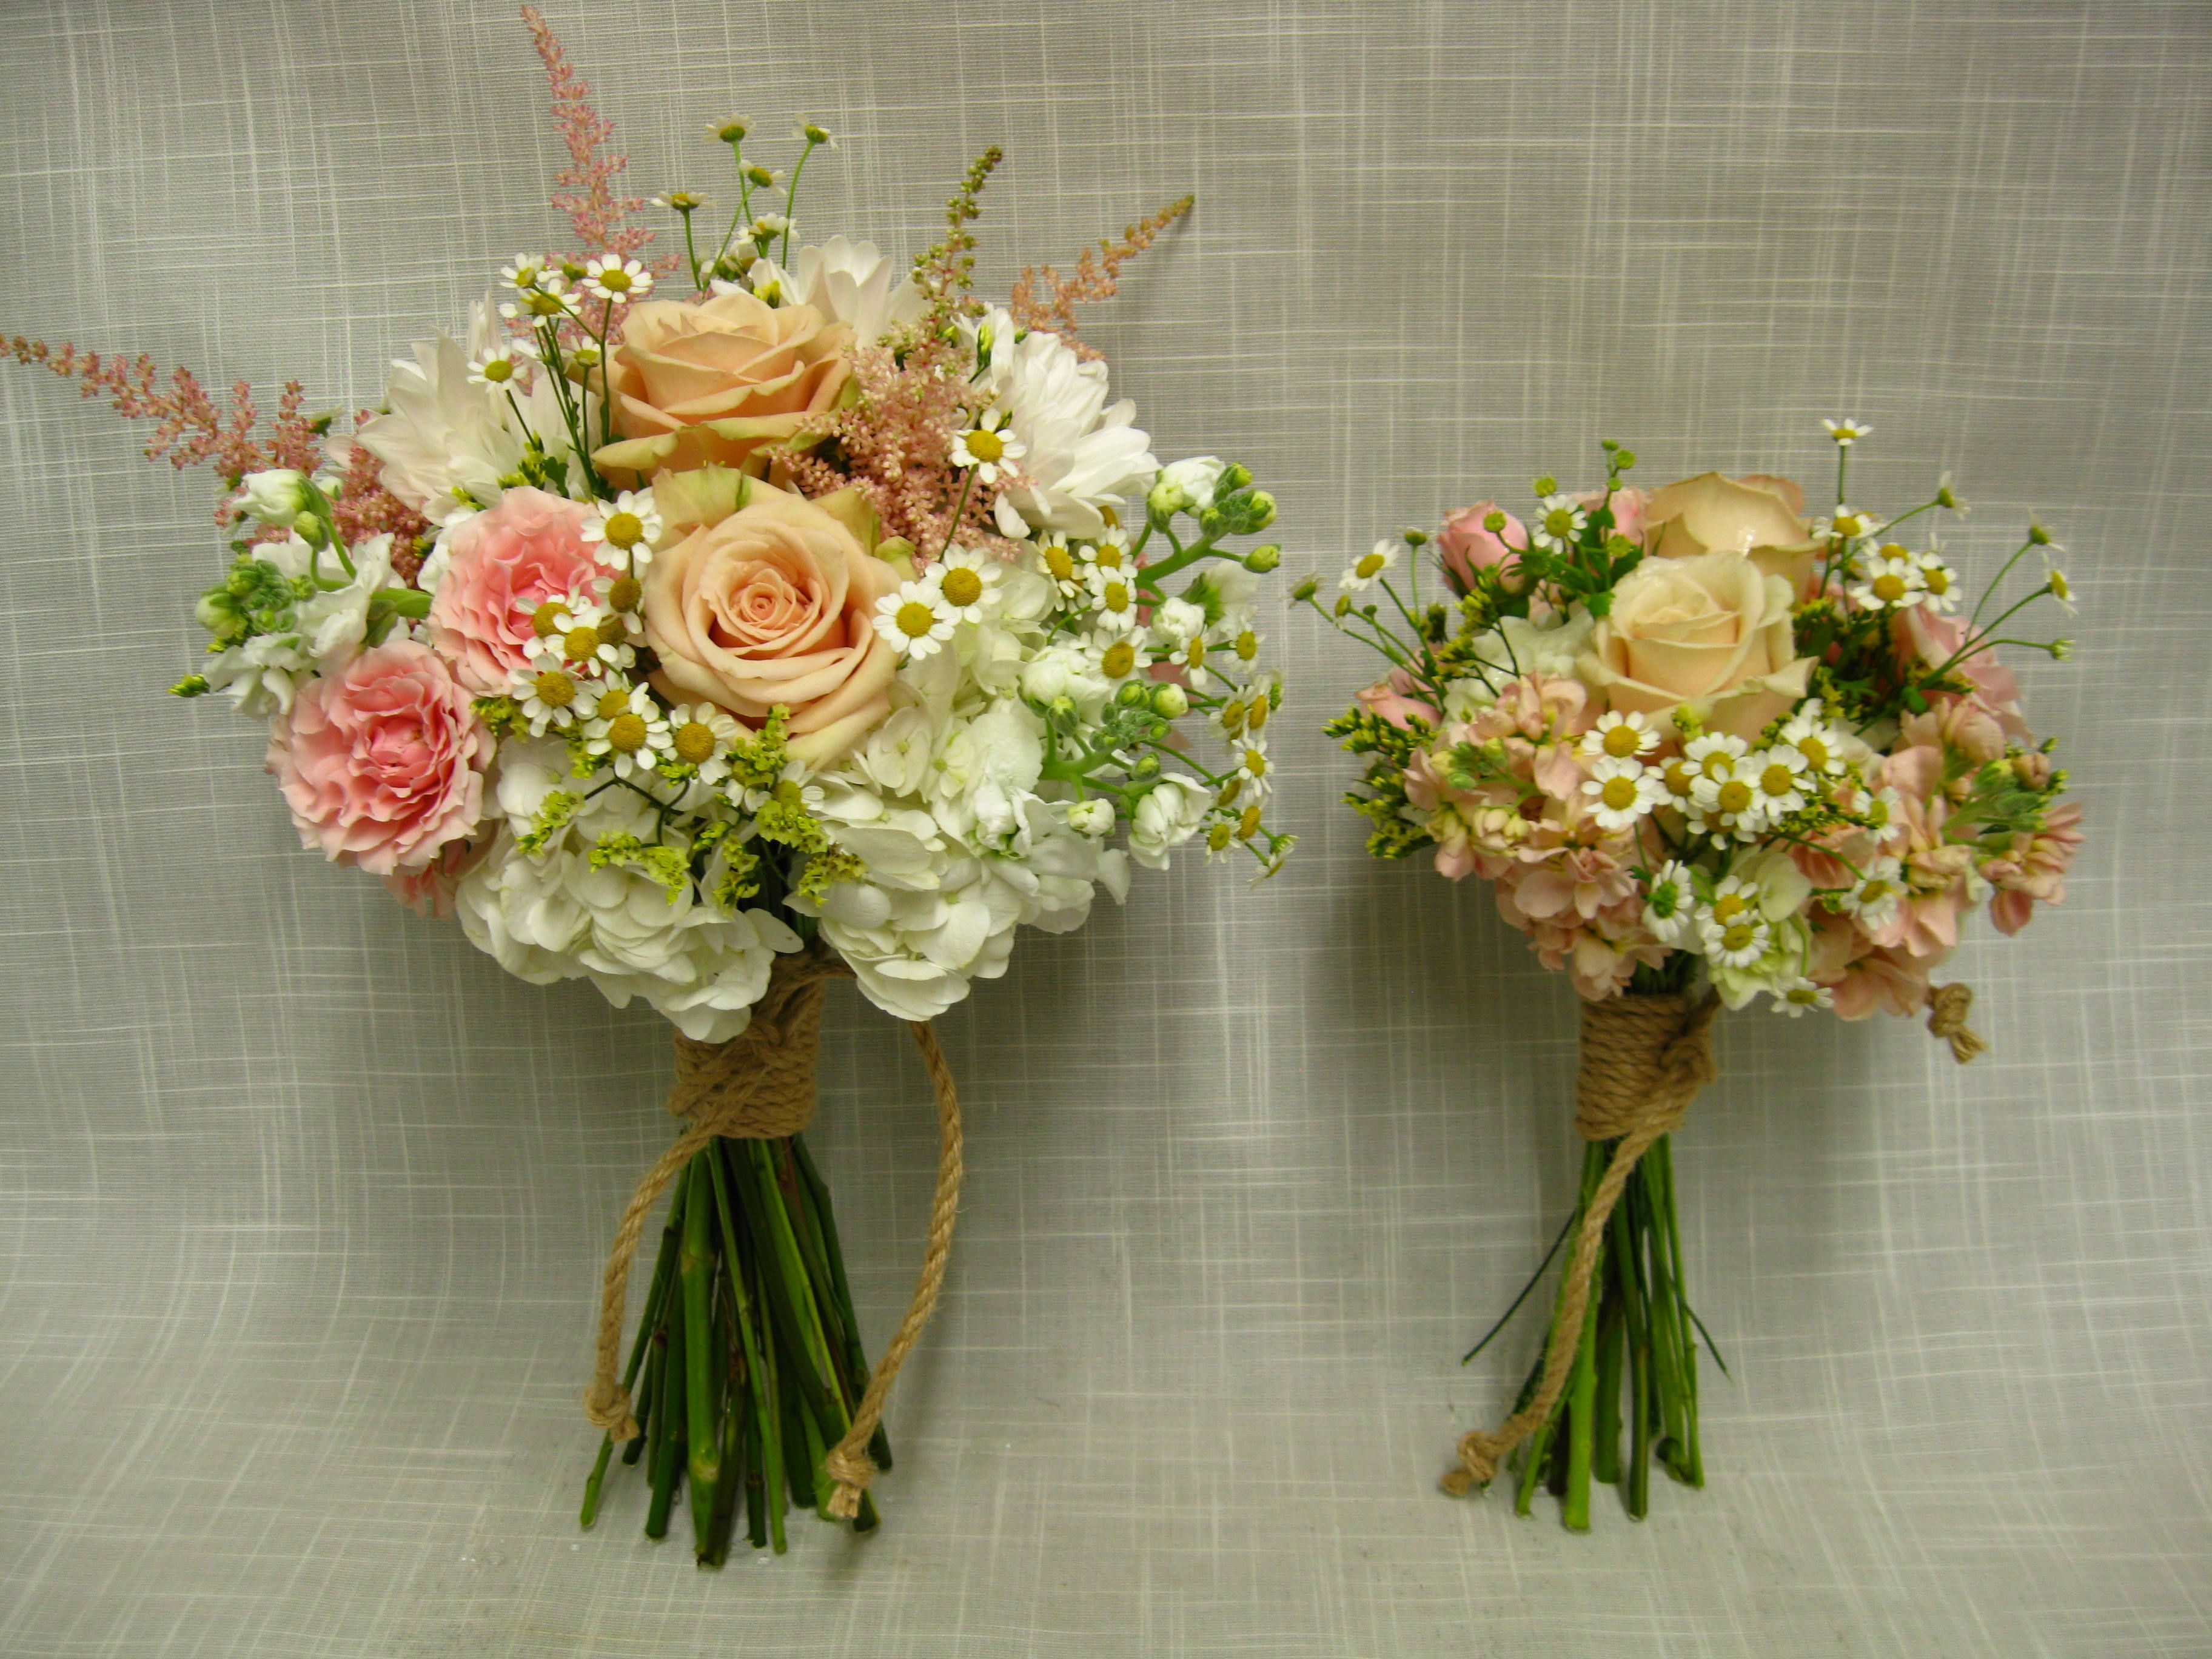 Simple Elegant Casual And Slightly Rustic Handtied Wedding Bouquets In Tones Of White